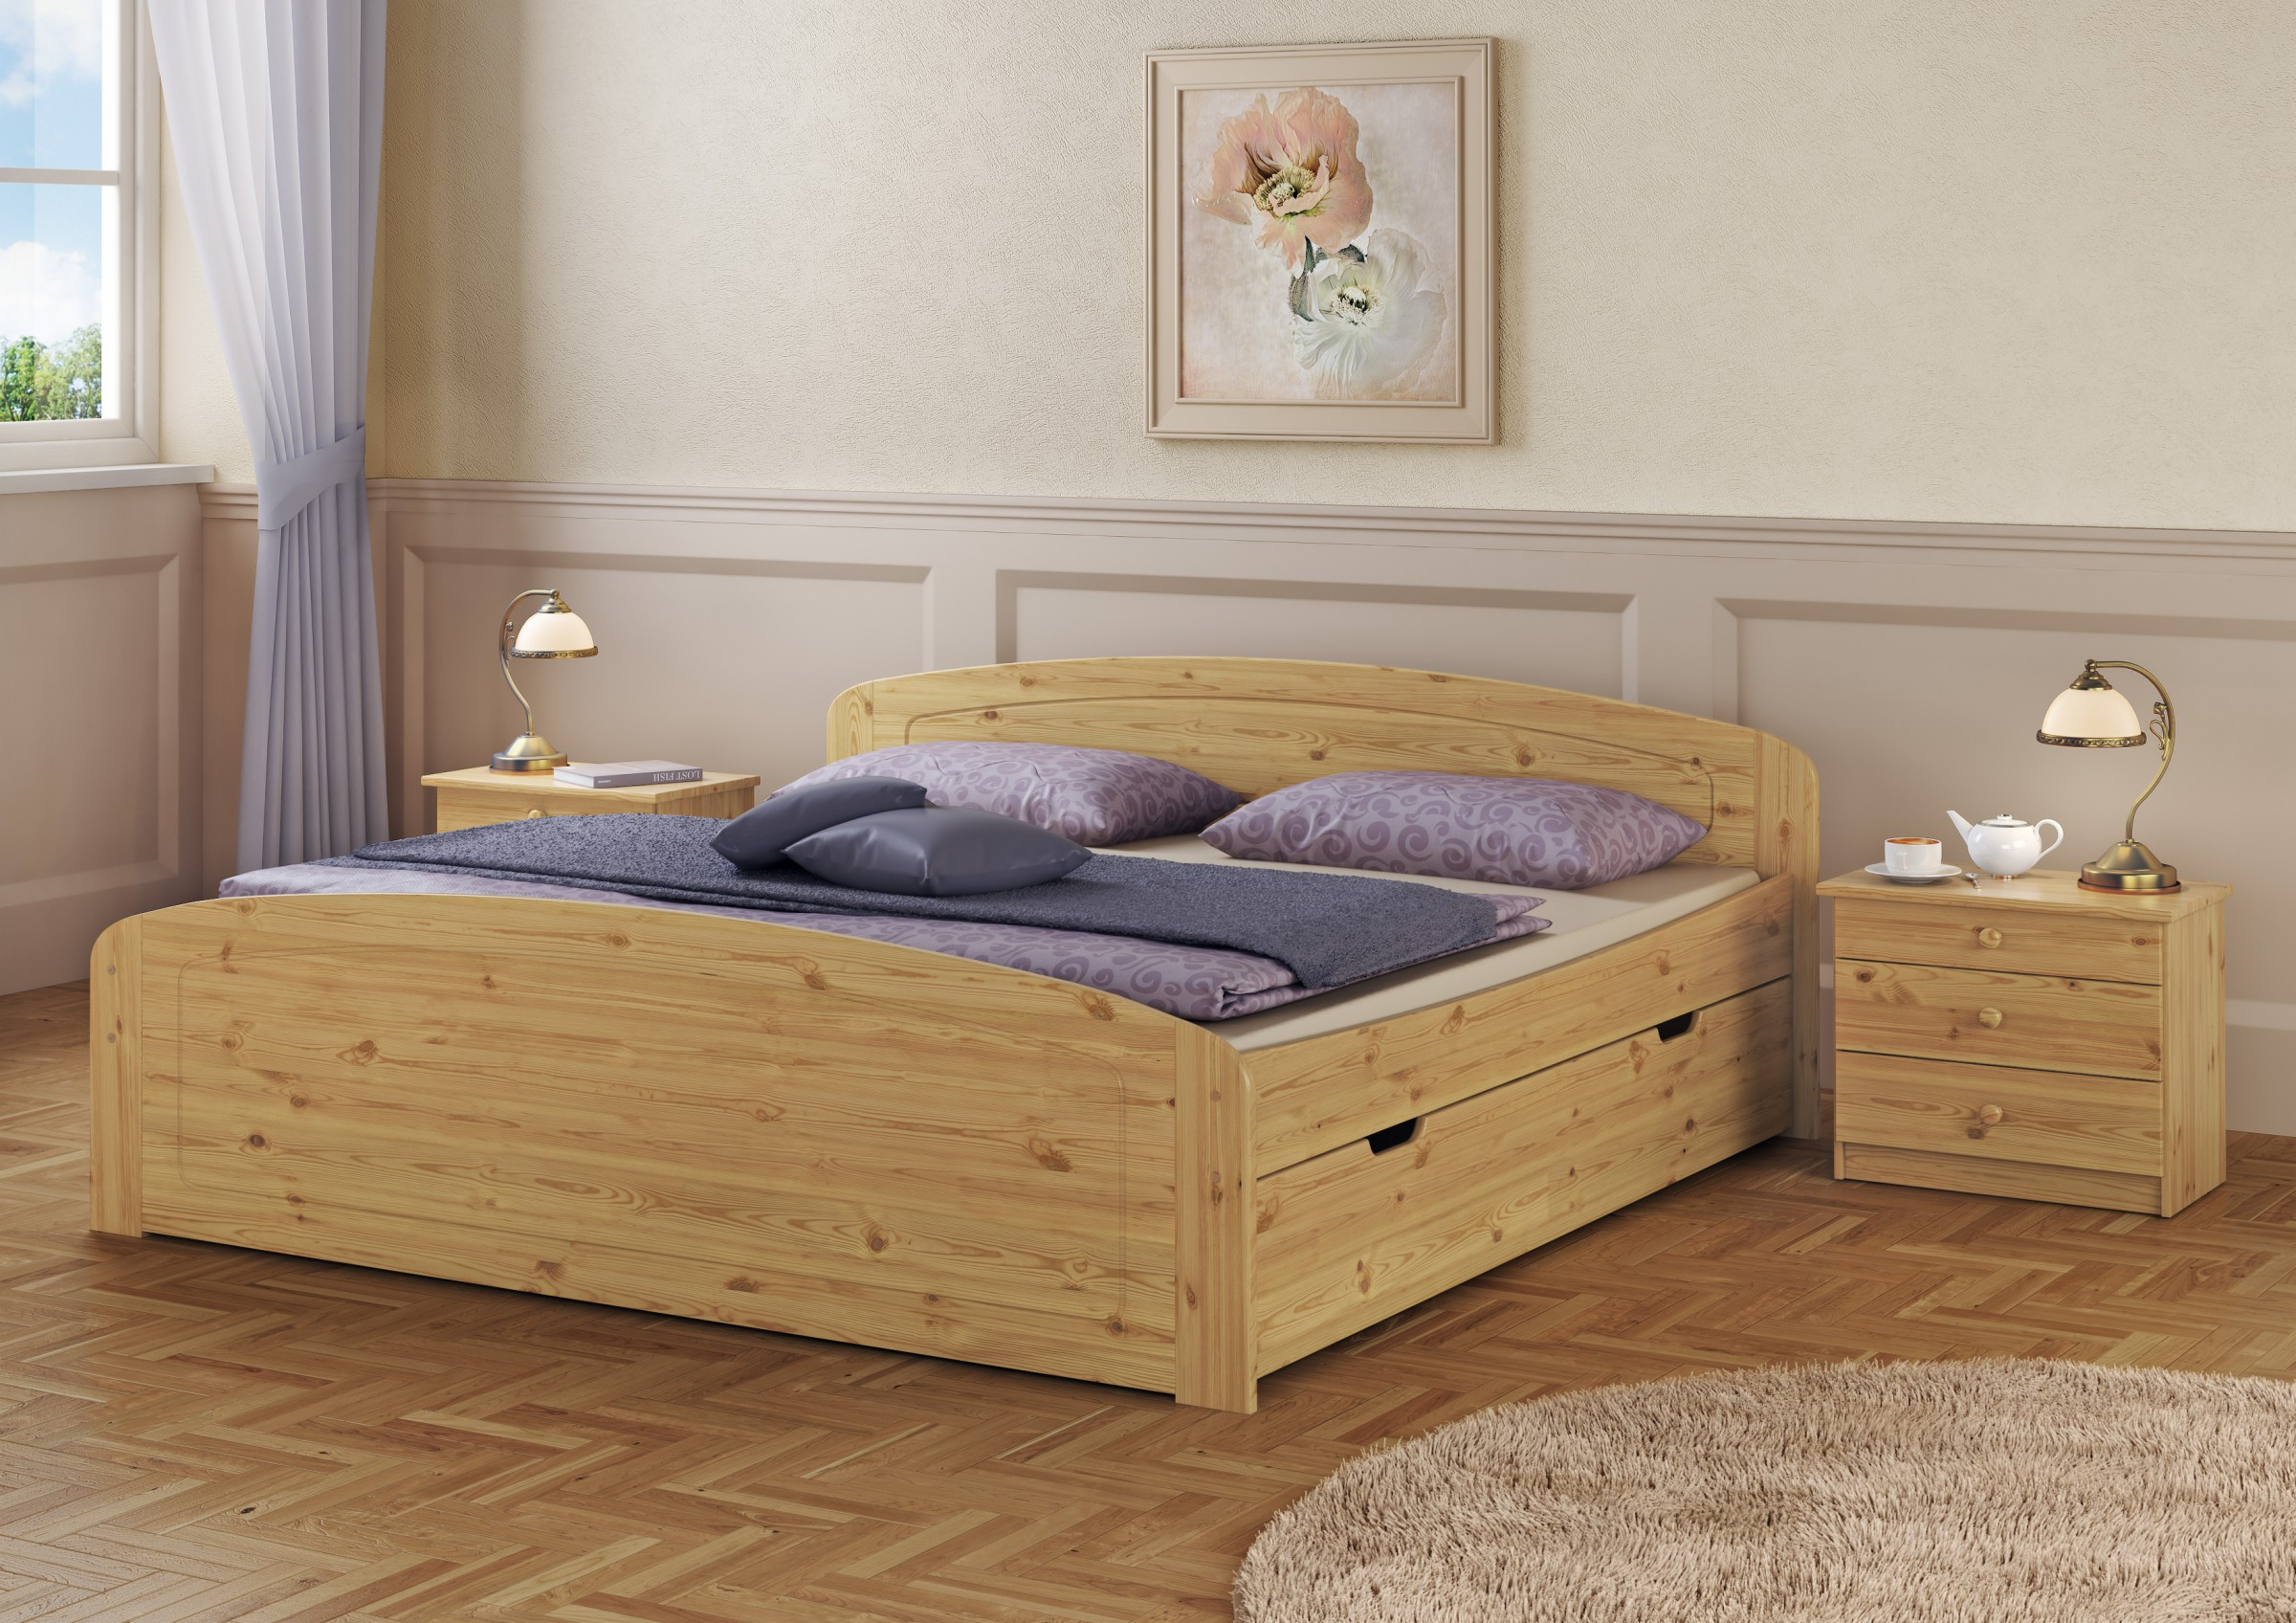 doppelbett bettkasten rollrost 200x200 seniorenbett. Black Bedroom Furniture Sets. Home Design Ideas